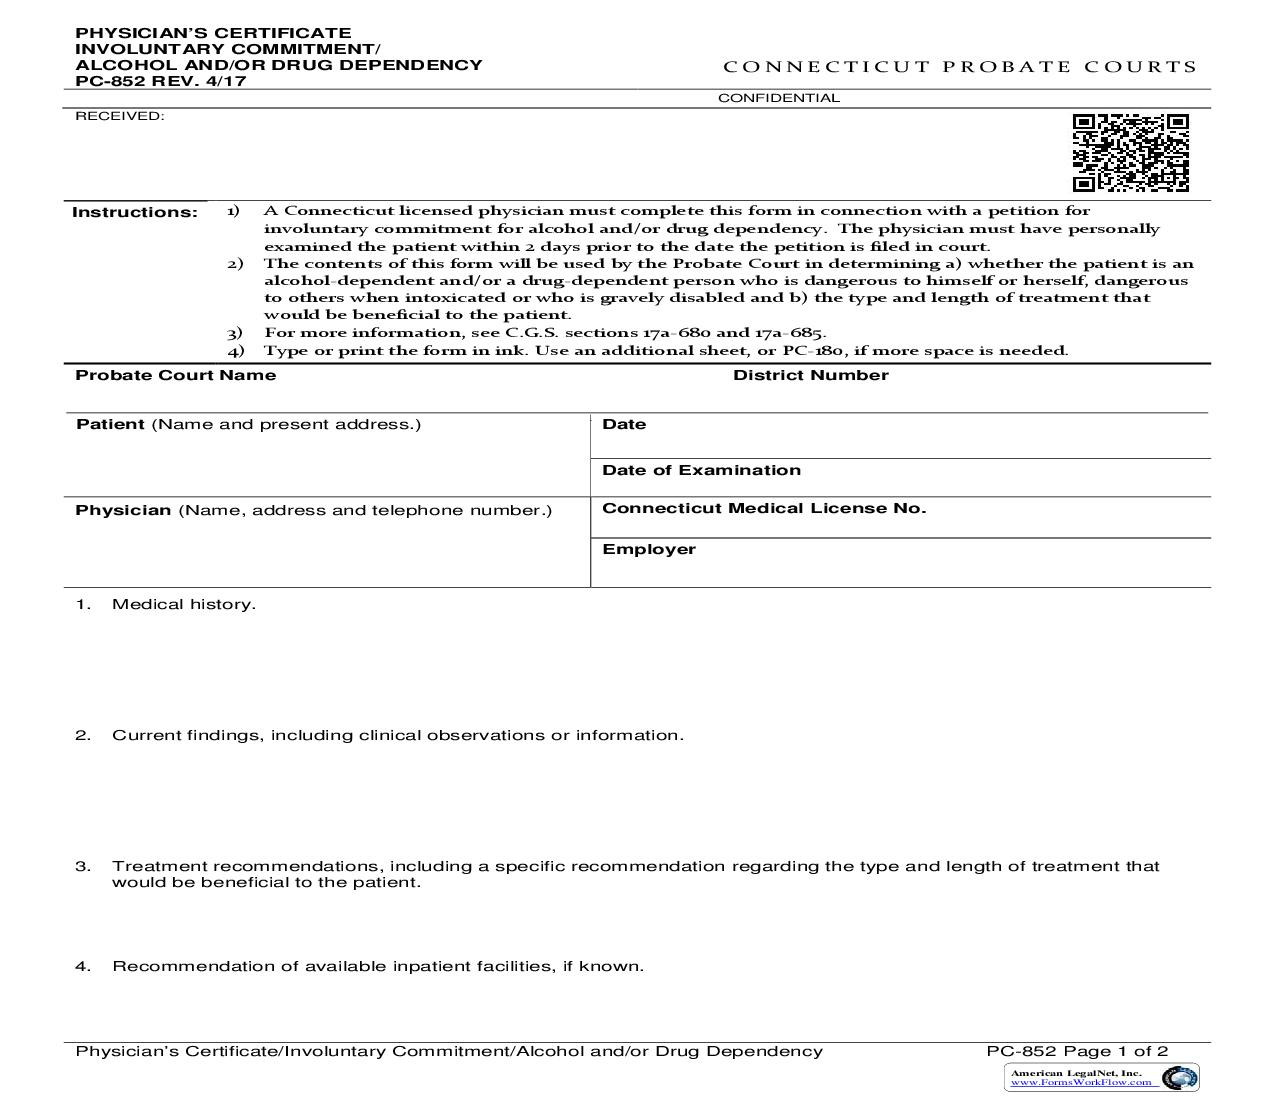 Physicians Certificate Involuntary Commitment Alcohol And Or Drug Dependency {PC-852} | Pdf Fpdf Doc Docx | Connecticut